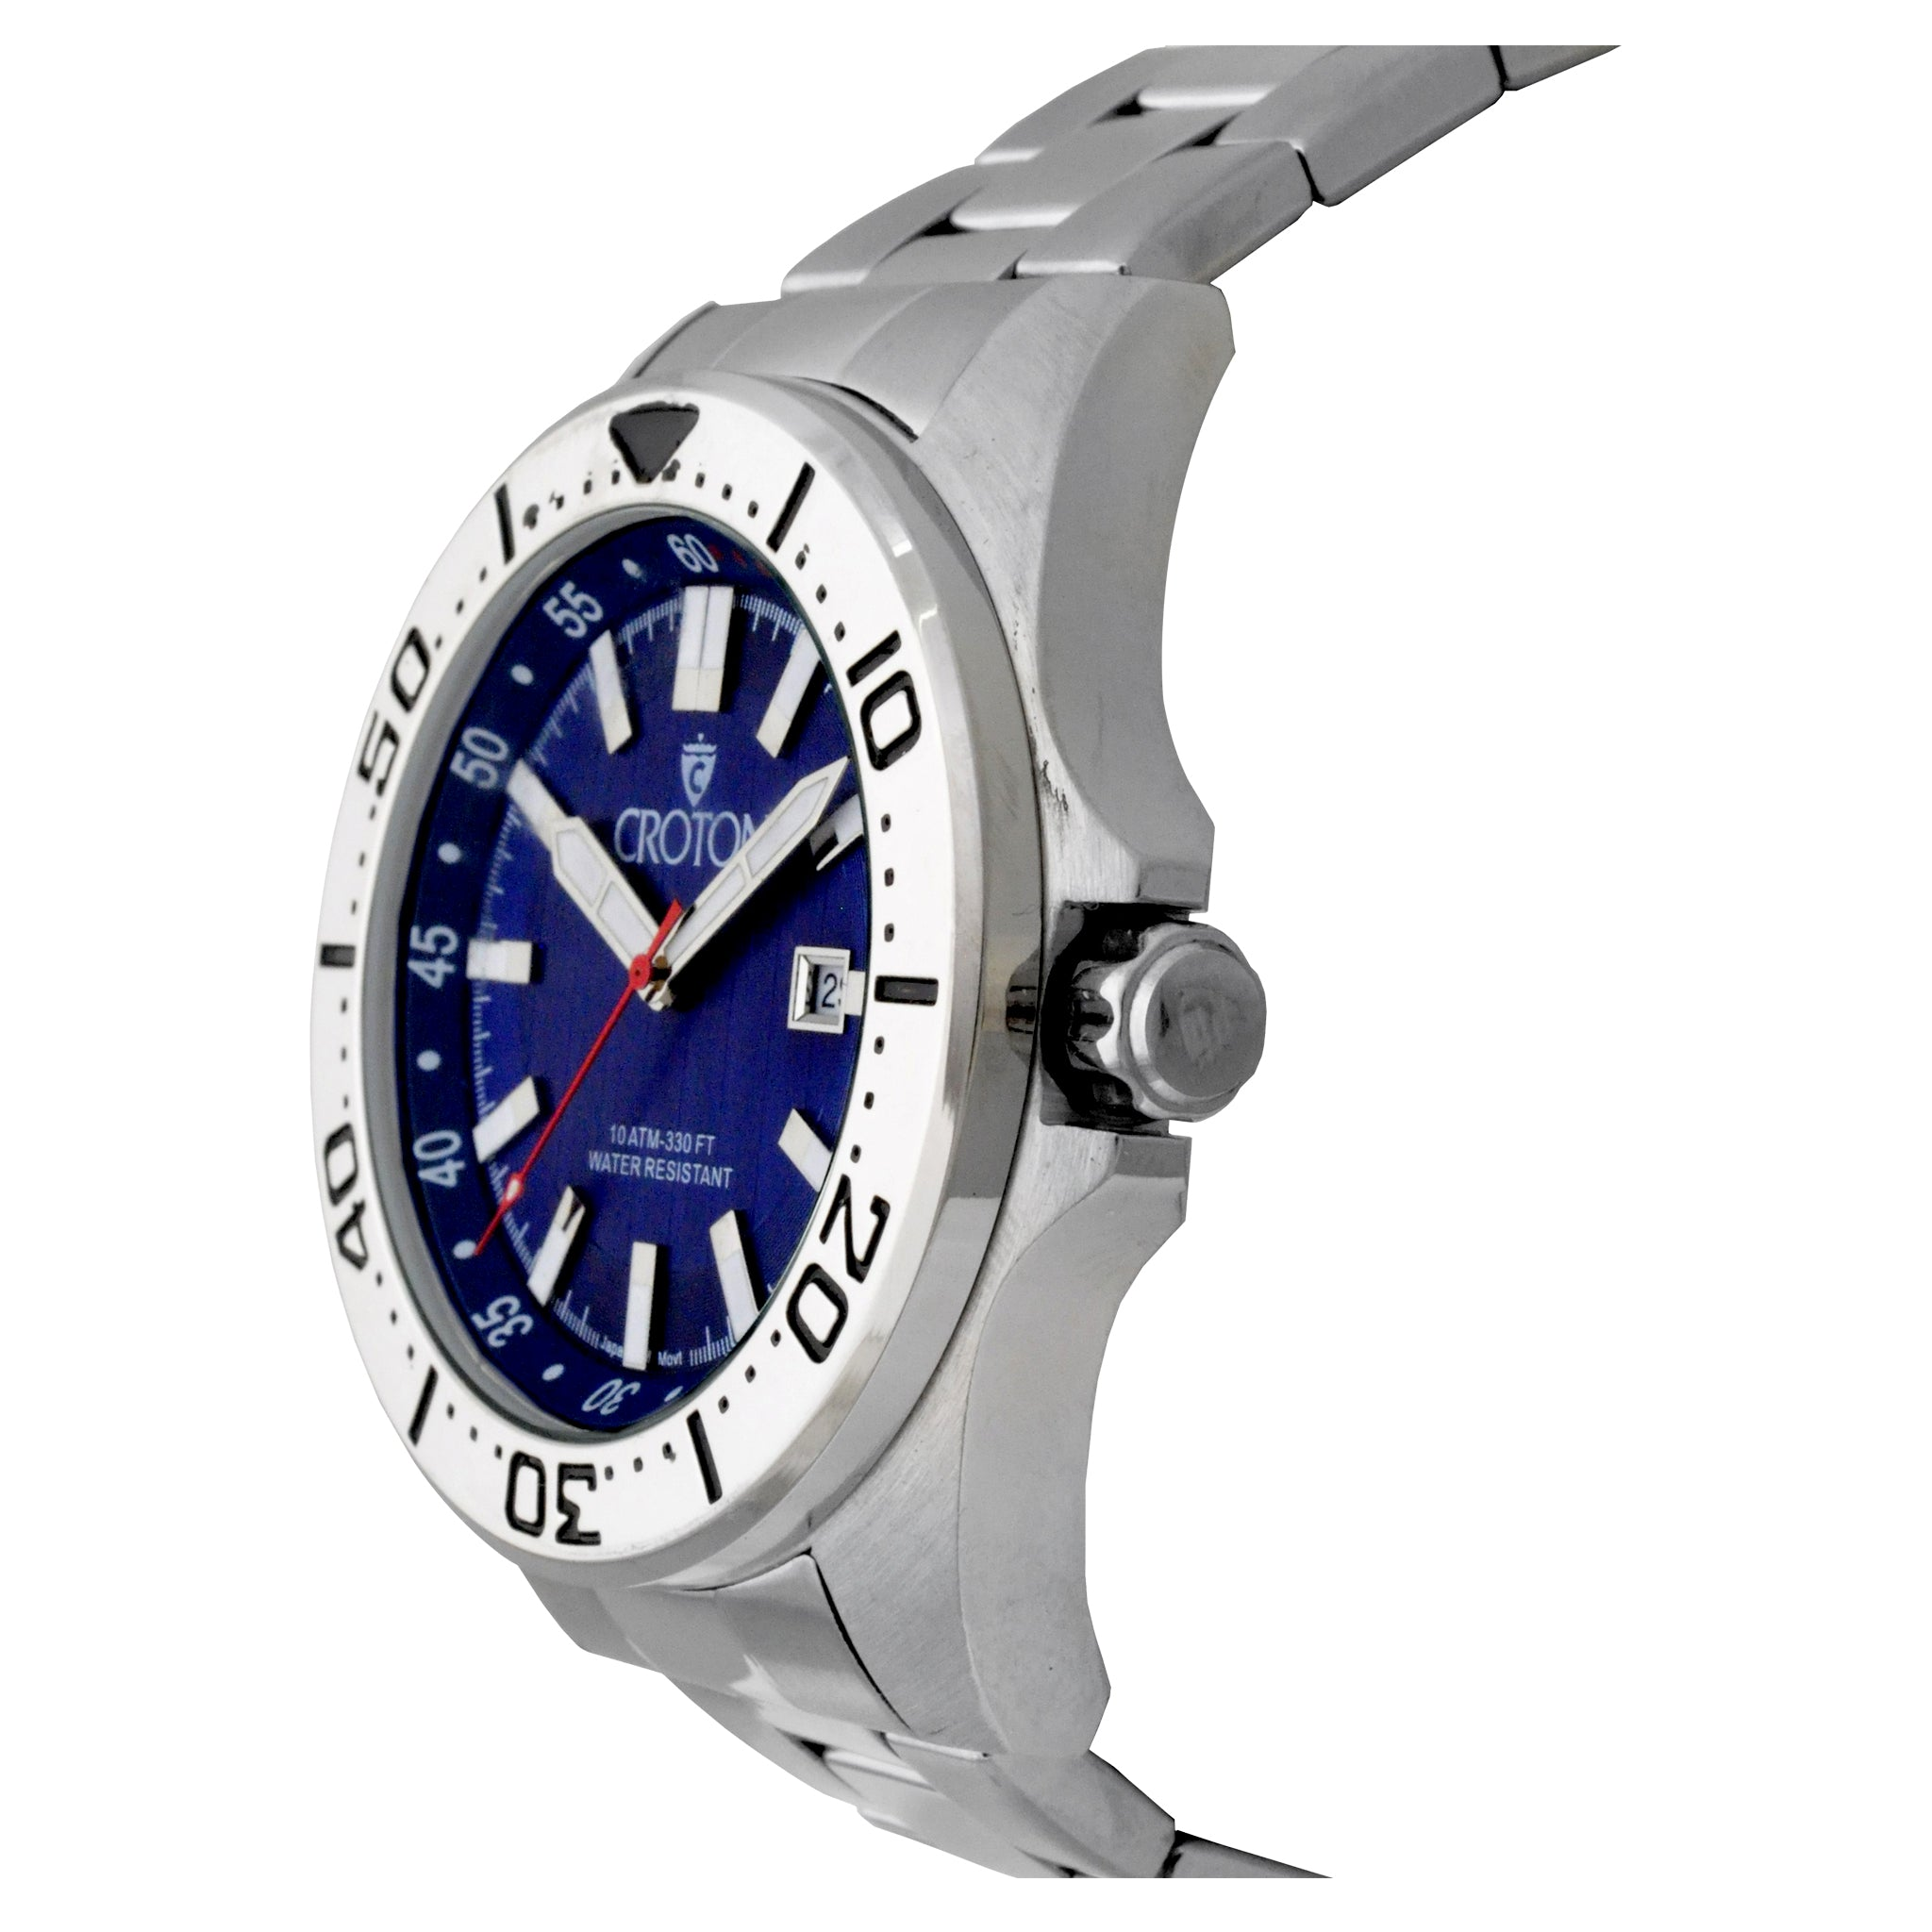 en diver promaster drive wikiwand a water m style mark nato resistant ring watches strap citizen on eco